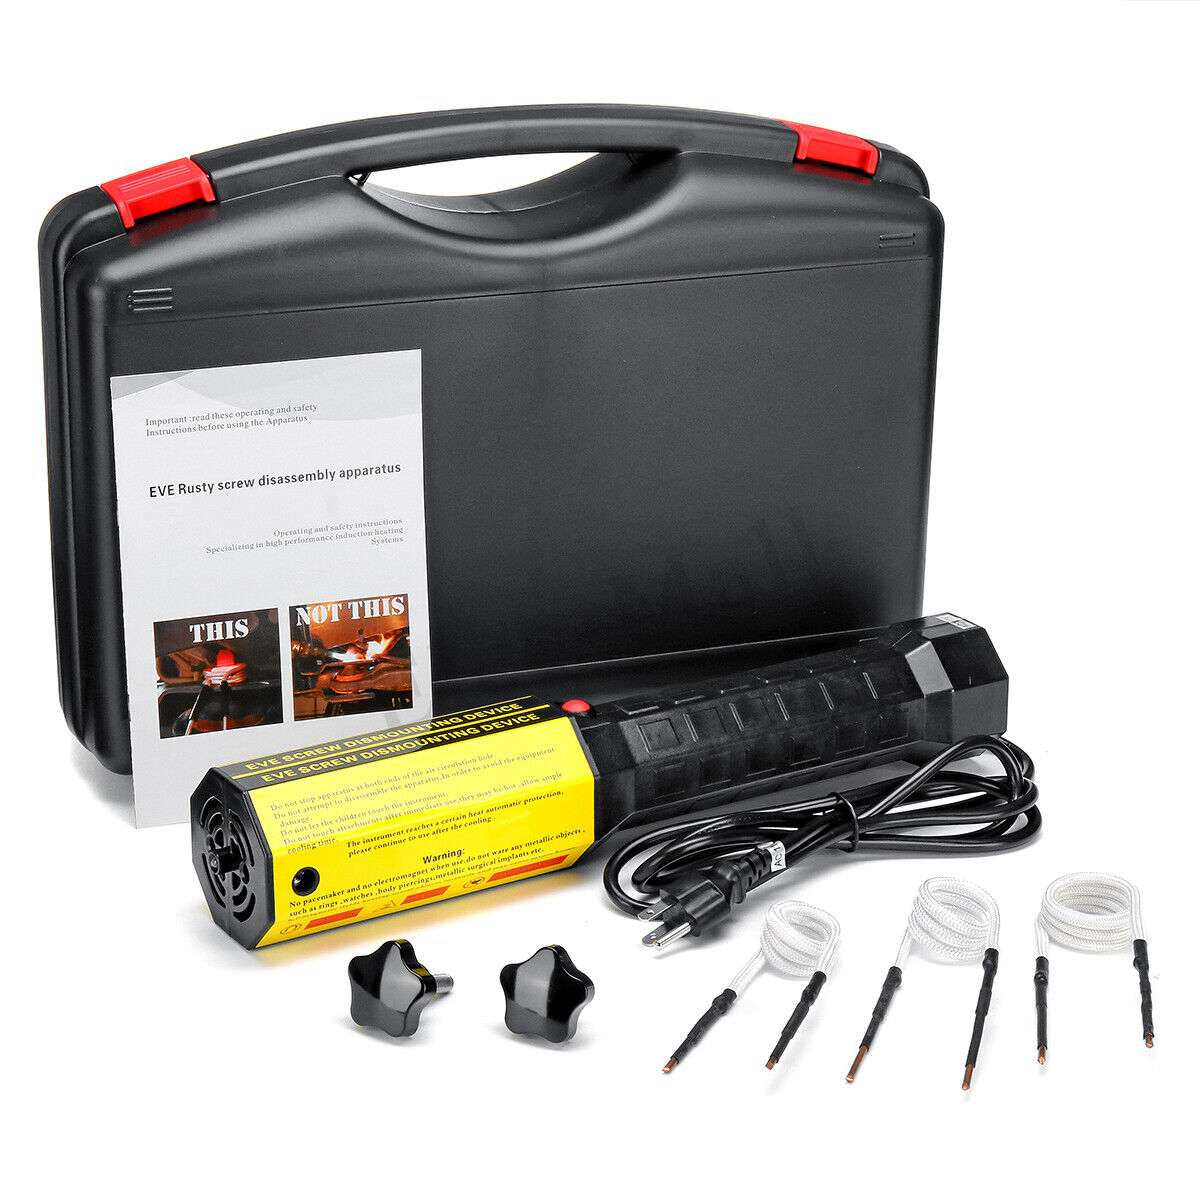 110V 1KW Mini Ductor Magnetic Induction Heater Kit For Automotive Flameless Heat